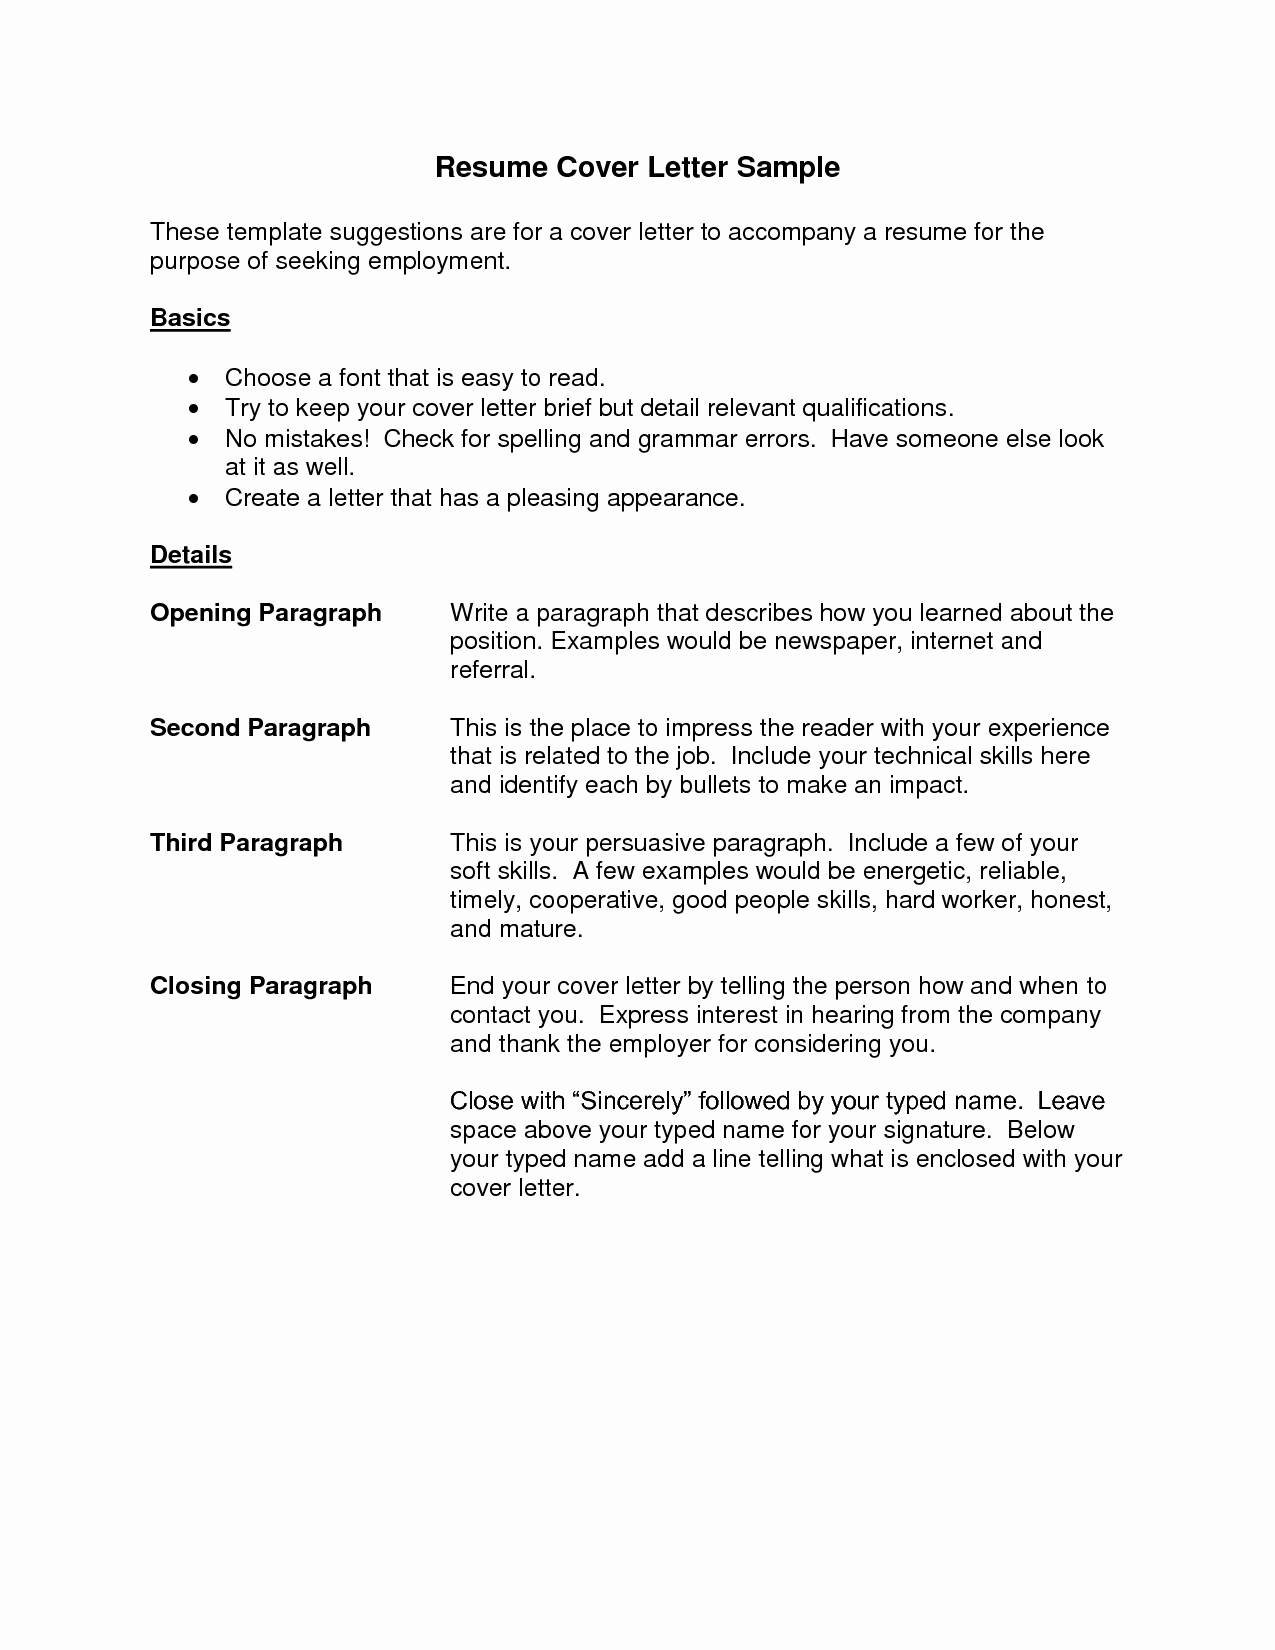 Free Cover Letters for Resumes Luxury Cover Letter Resume Best Templatesimple Cover Letter